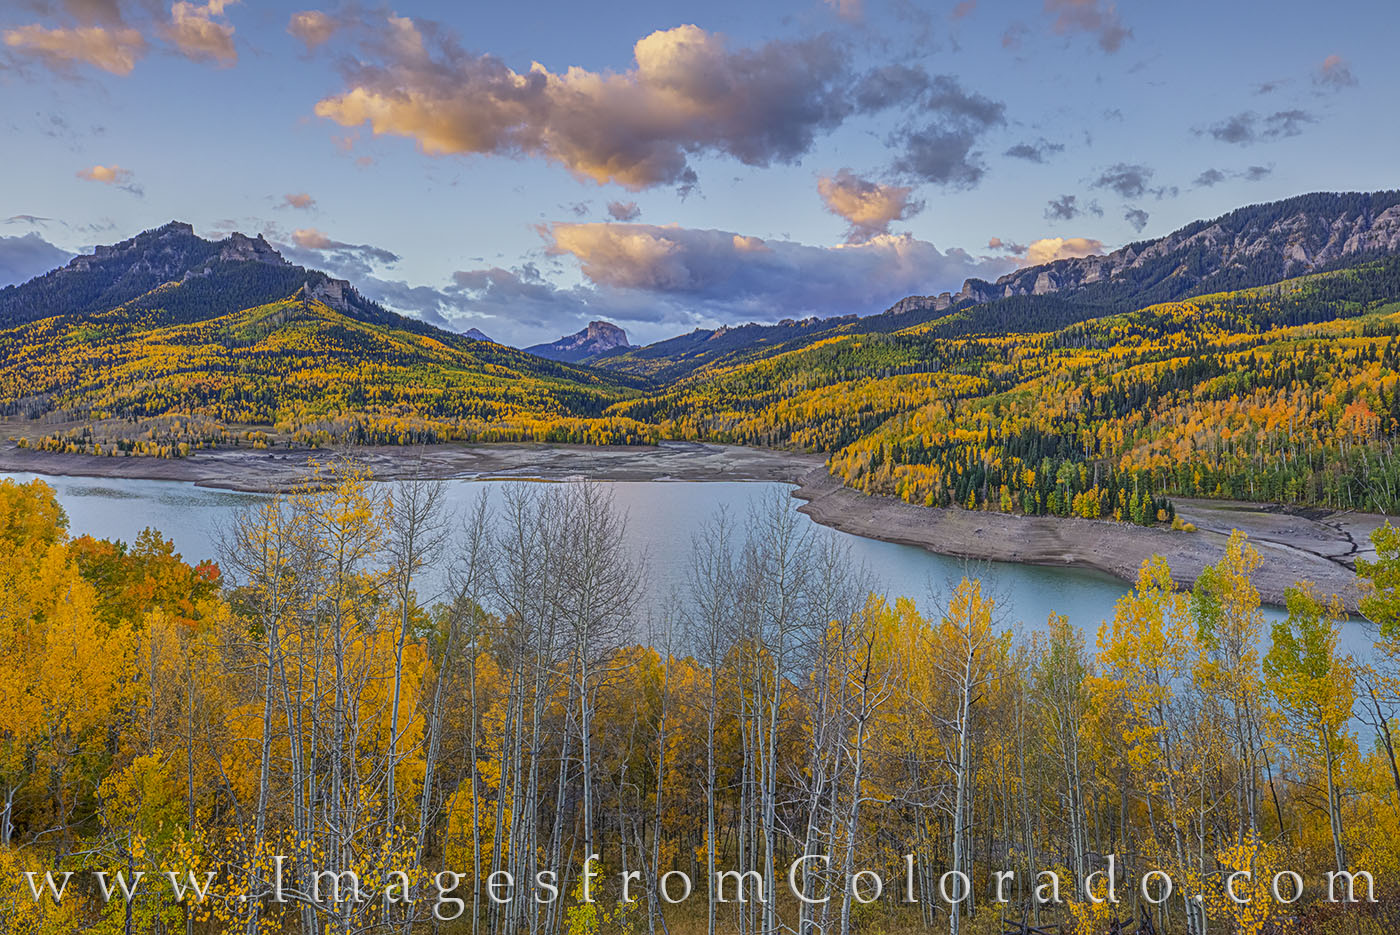 silver jack, cimarron, owl pass, ouray, fall, autumn, aspen, morning, photo